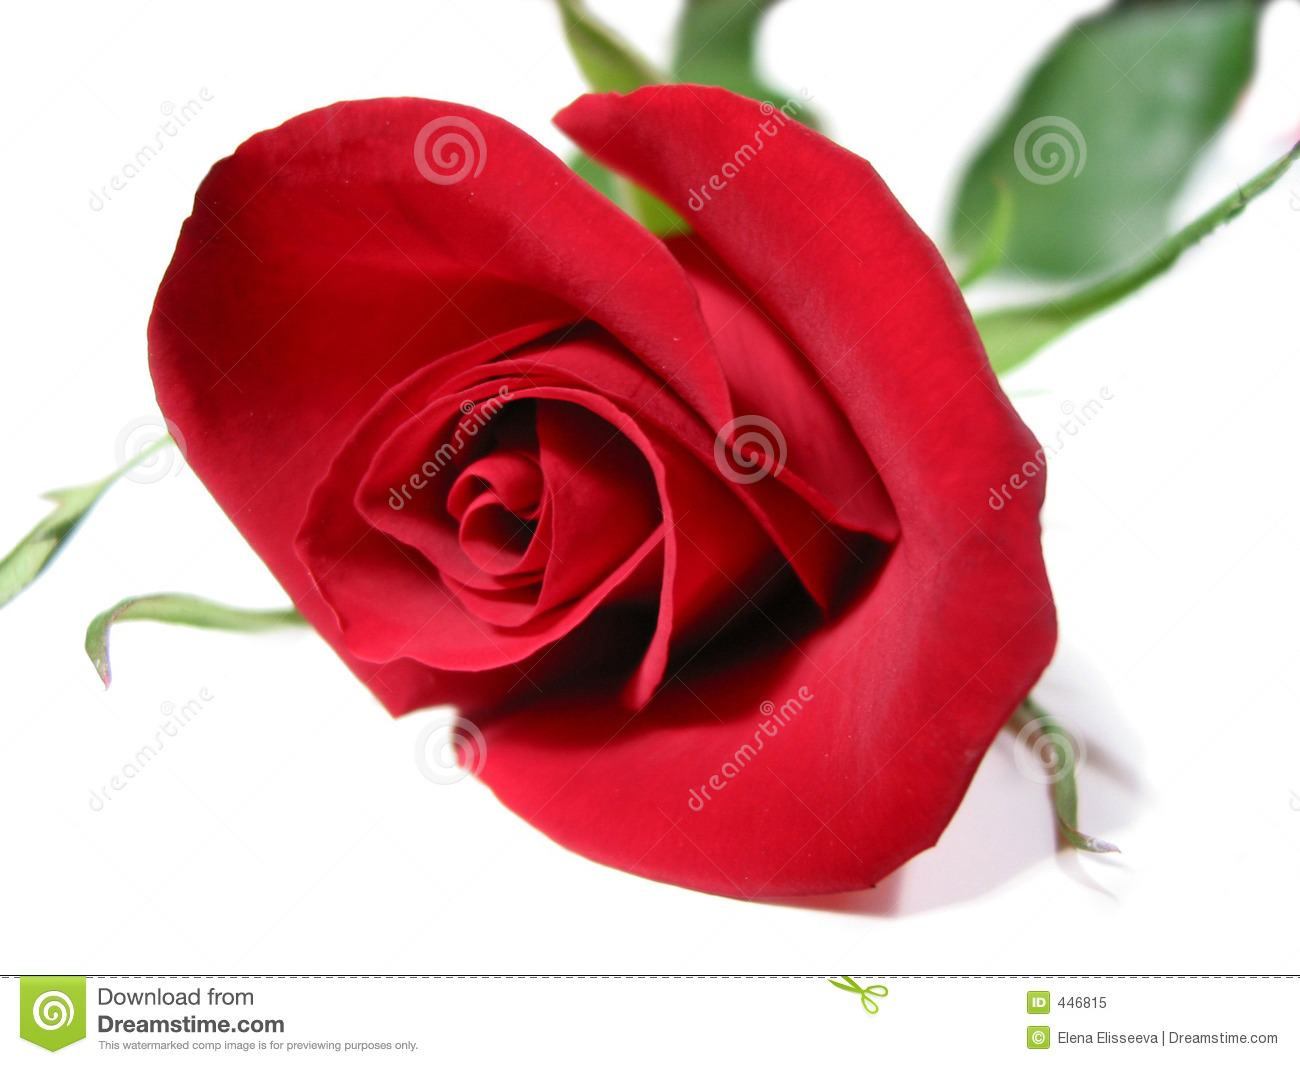 Beautiful Single Red Rose Flower Isolated Royalty Free: Red Rose White Background Royalty Free Stock Photo